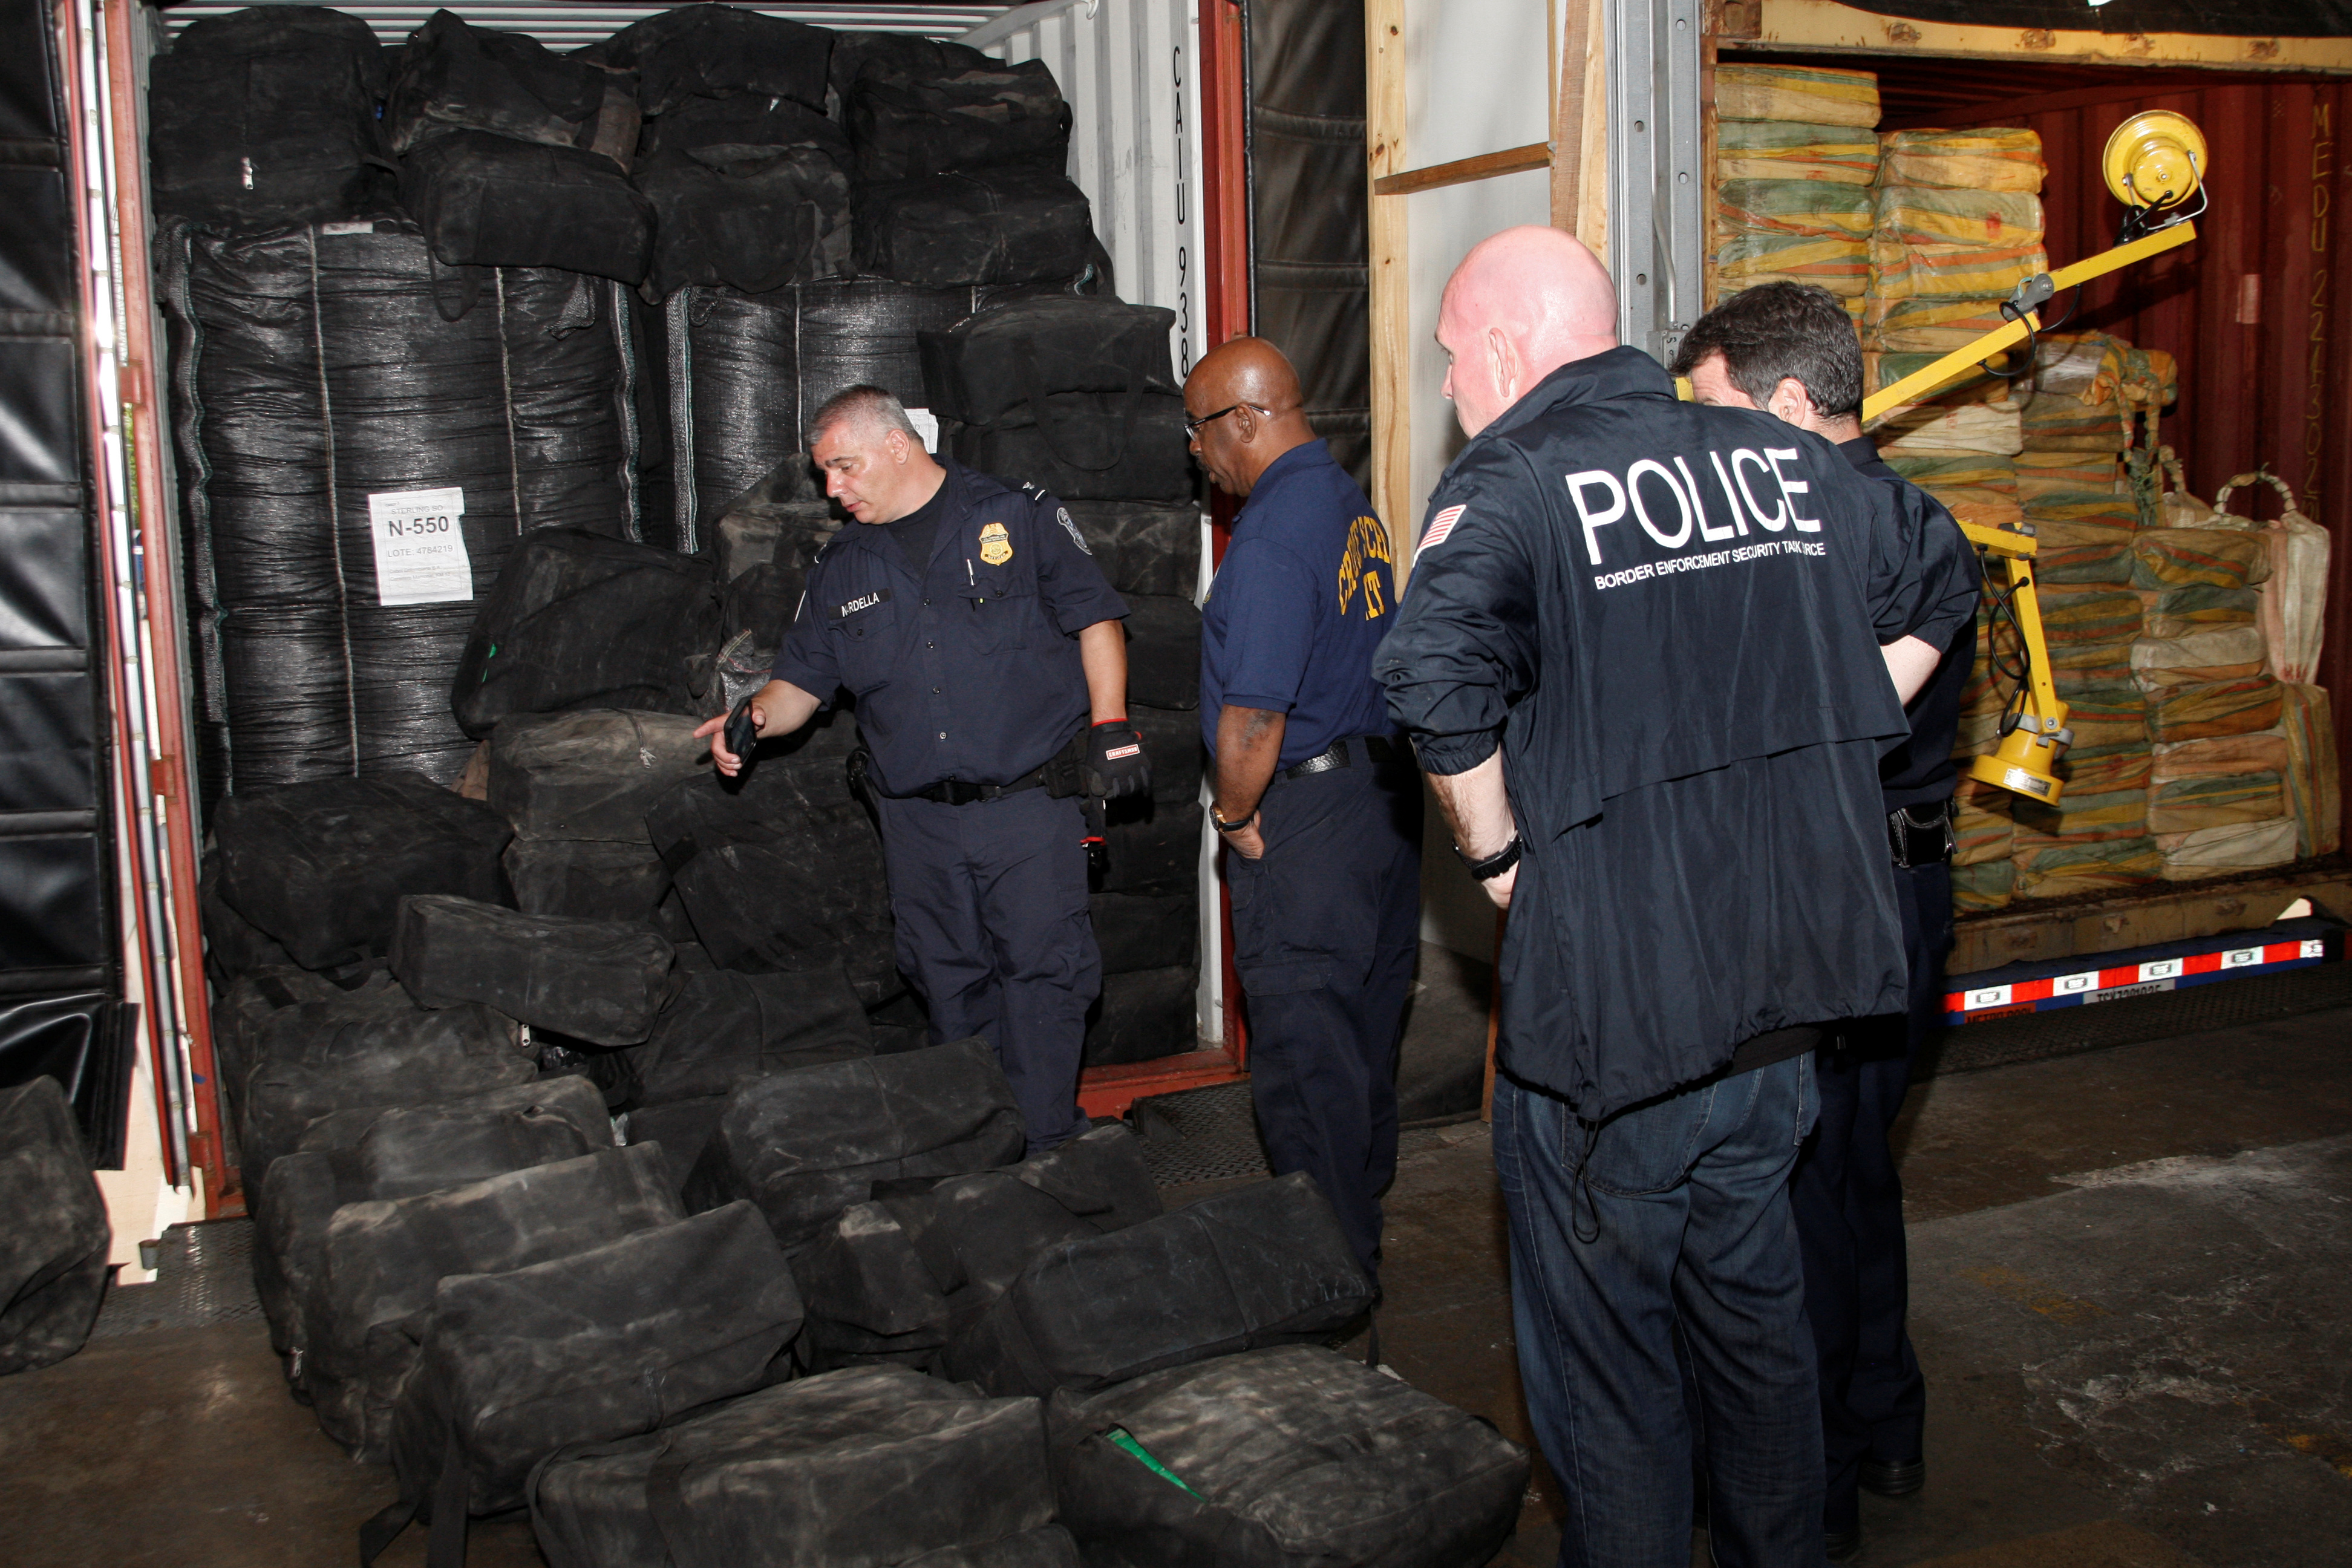 Some of the 35,000 pounds (15,875 kg) of cocaine that U.S. Customs and Border Protection and Homeland Security Investigations seized on the MSC Gayane in seven shipping containers is seen in Philadelphia, Pennsylvania, U.S. June 17, 2019. Picture taken June 17, 2019. Steve Sapp/courtesy of U.S. Customs and Border Protection REUTERS